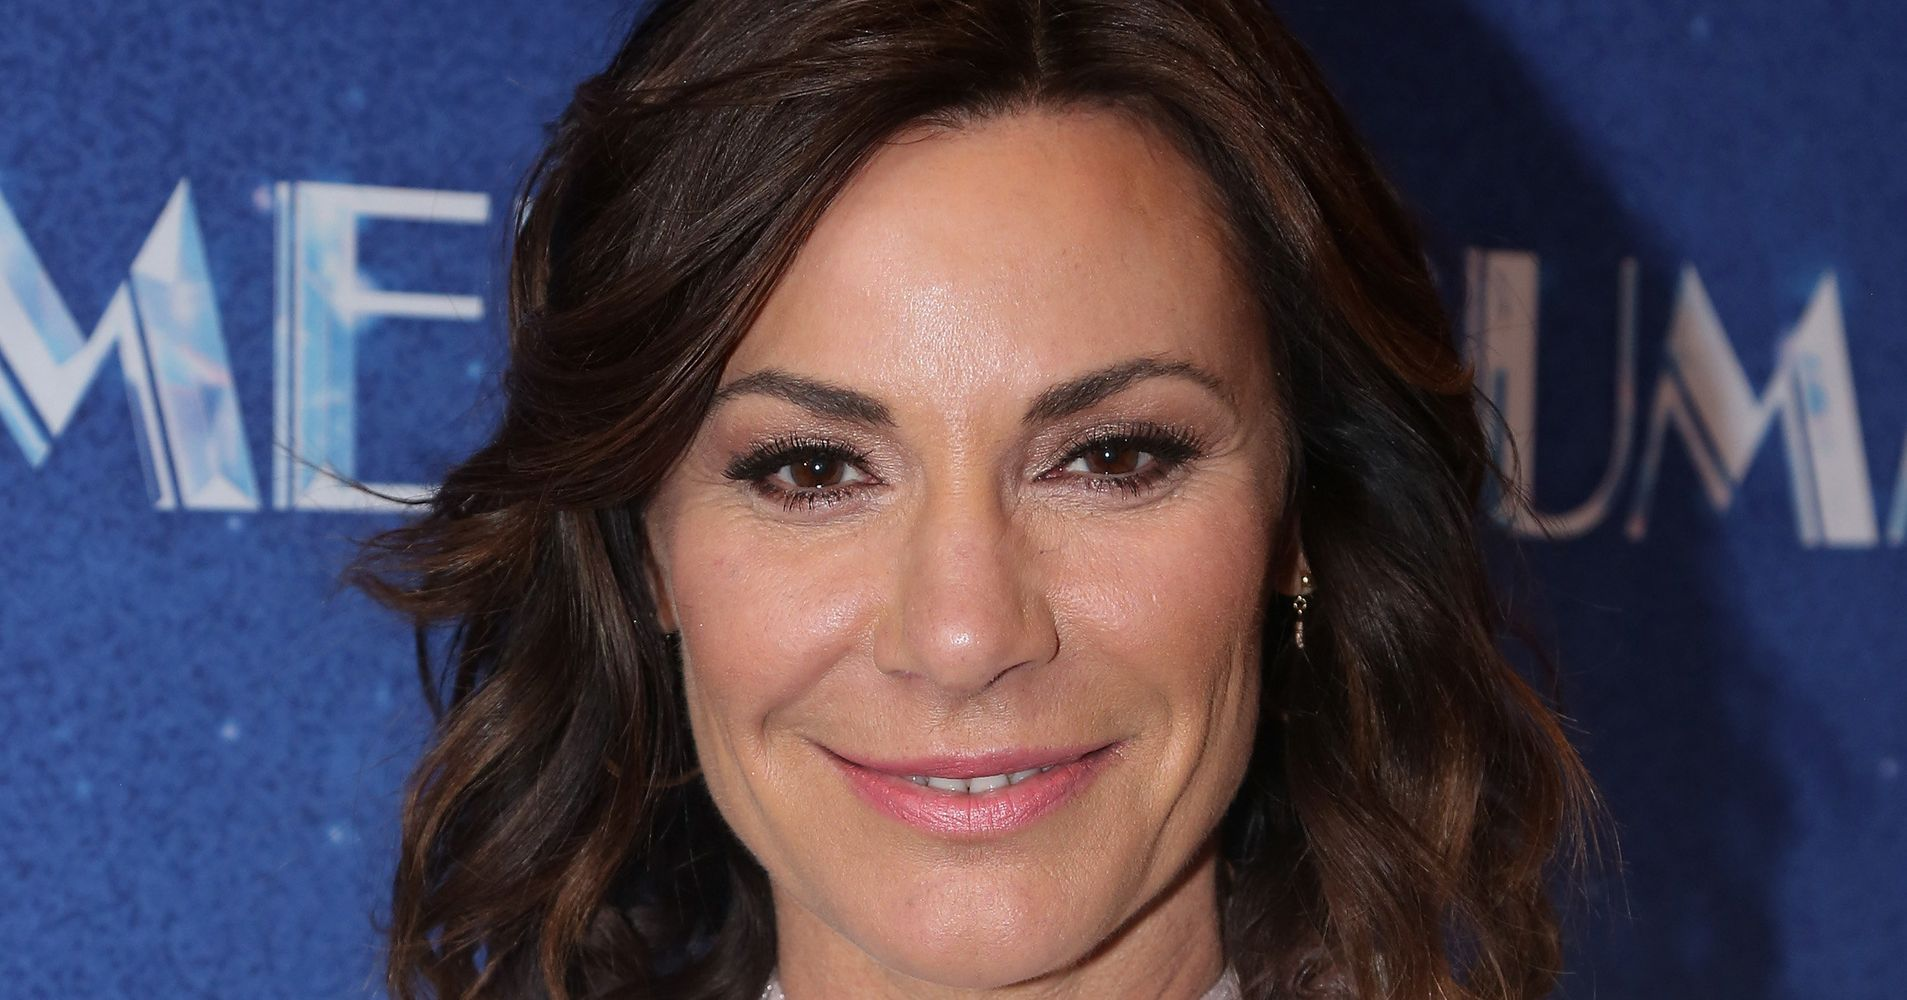 'RHONY' Star Luann De Lesseps Sued By Ex-Husband, Children